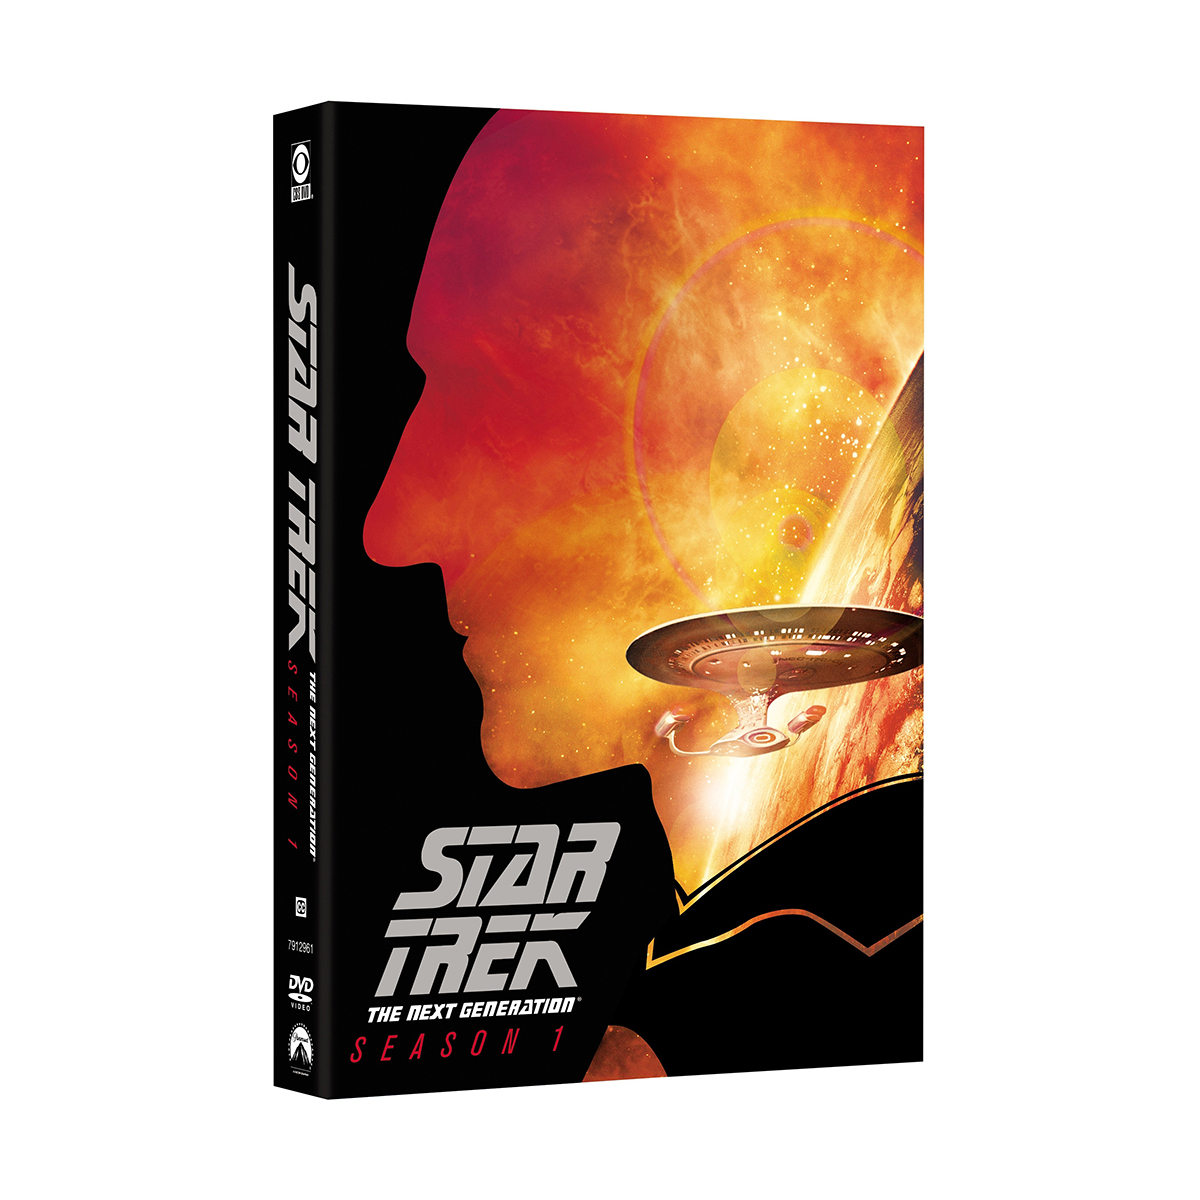 Star Trek: The Next Generation - Season 1 DVD